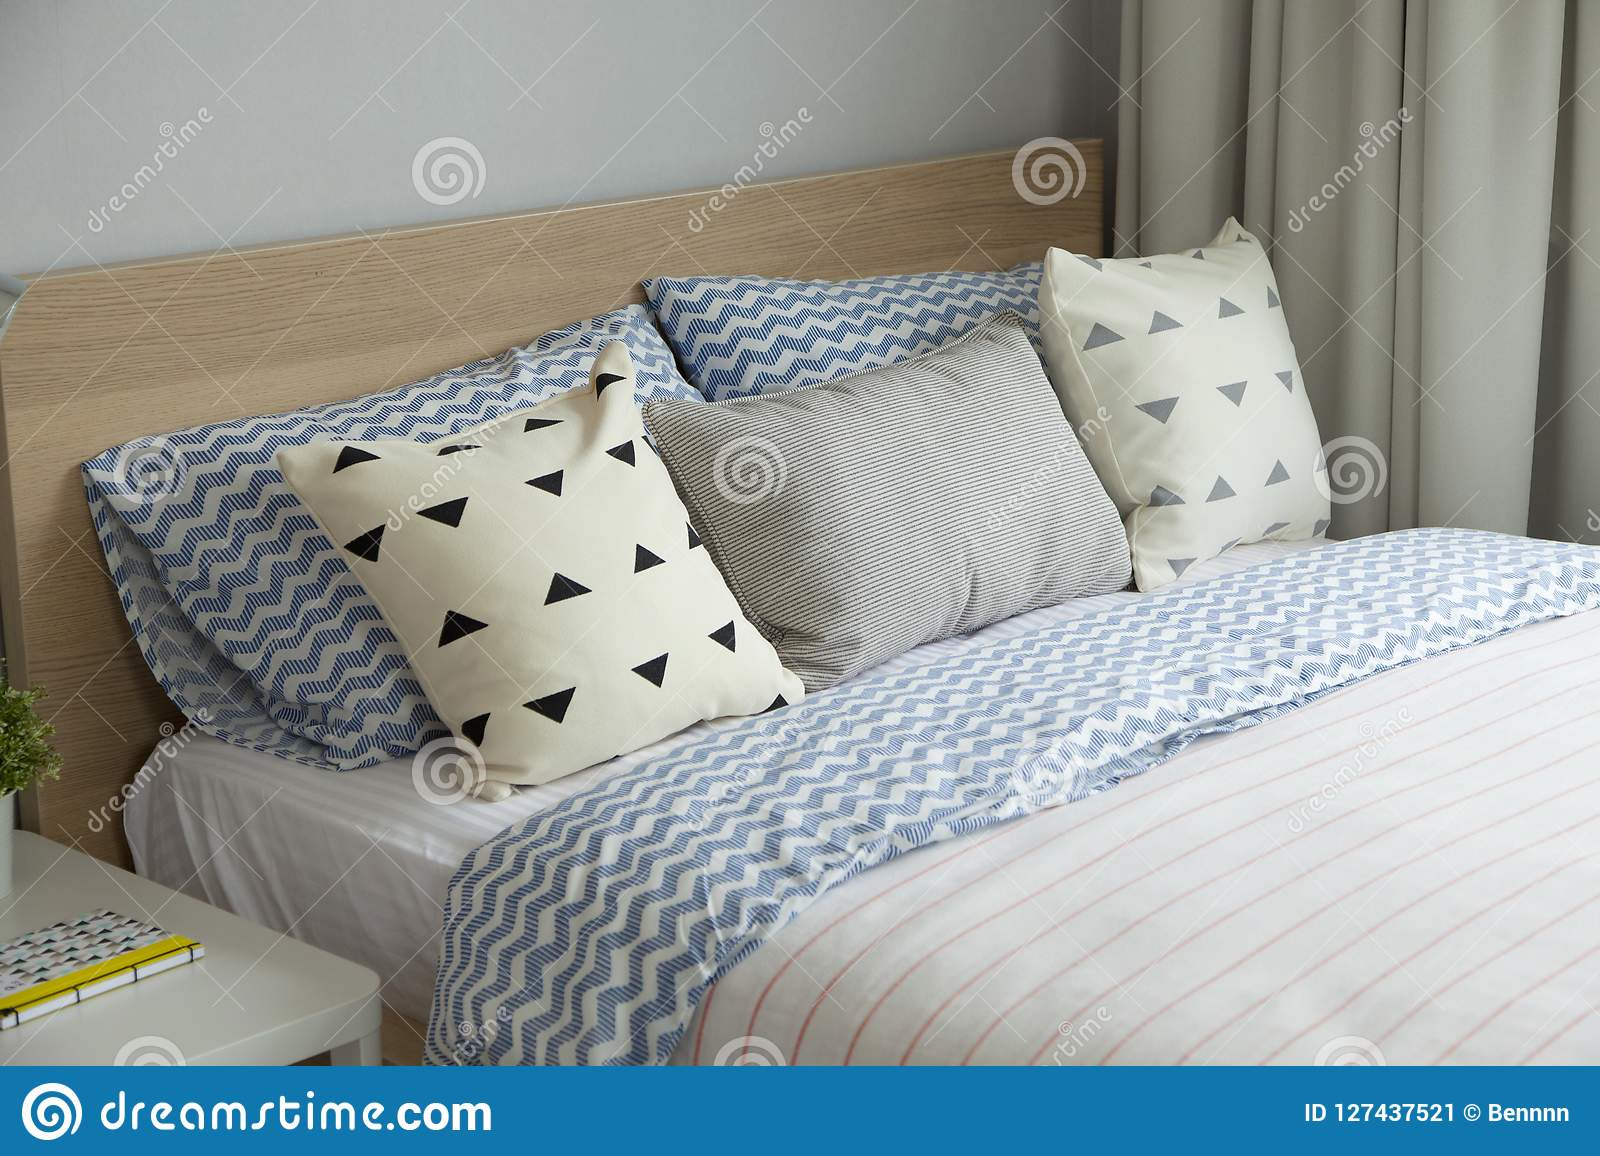 https www dreamstime com pink blue blanket creative pillows bed colorful kids room white side table lamp image127437521